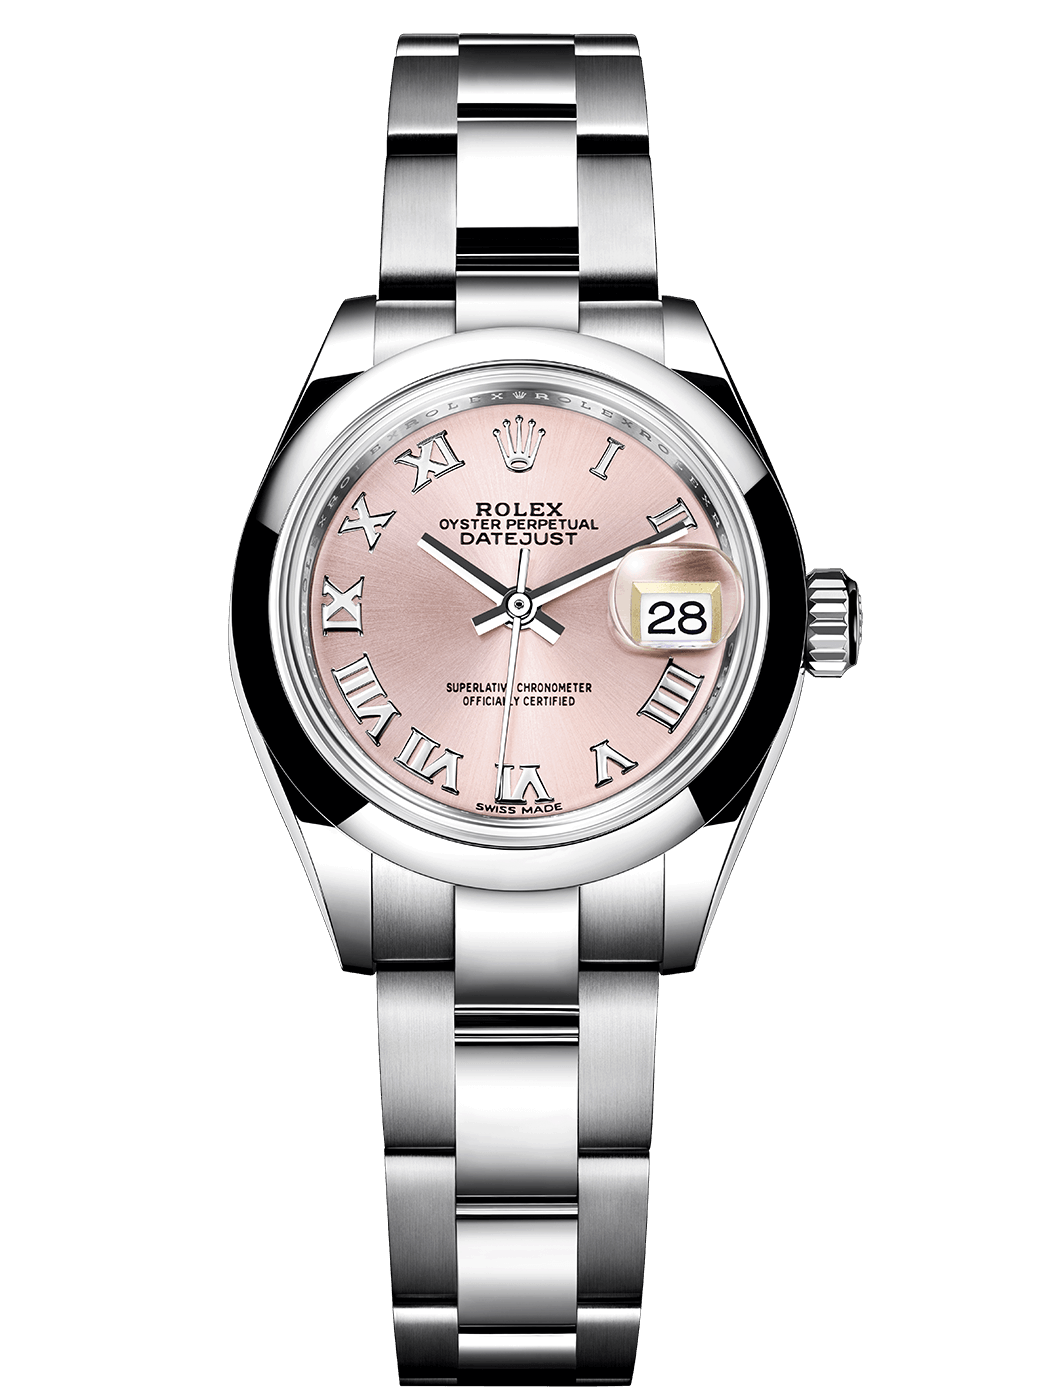 The new Lady DateJust, available for the first time in 904L Steel or with an 18 ct white gold bezel